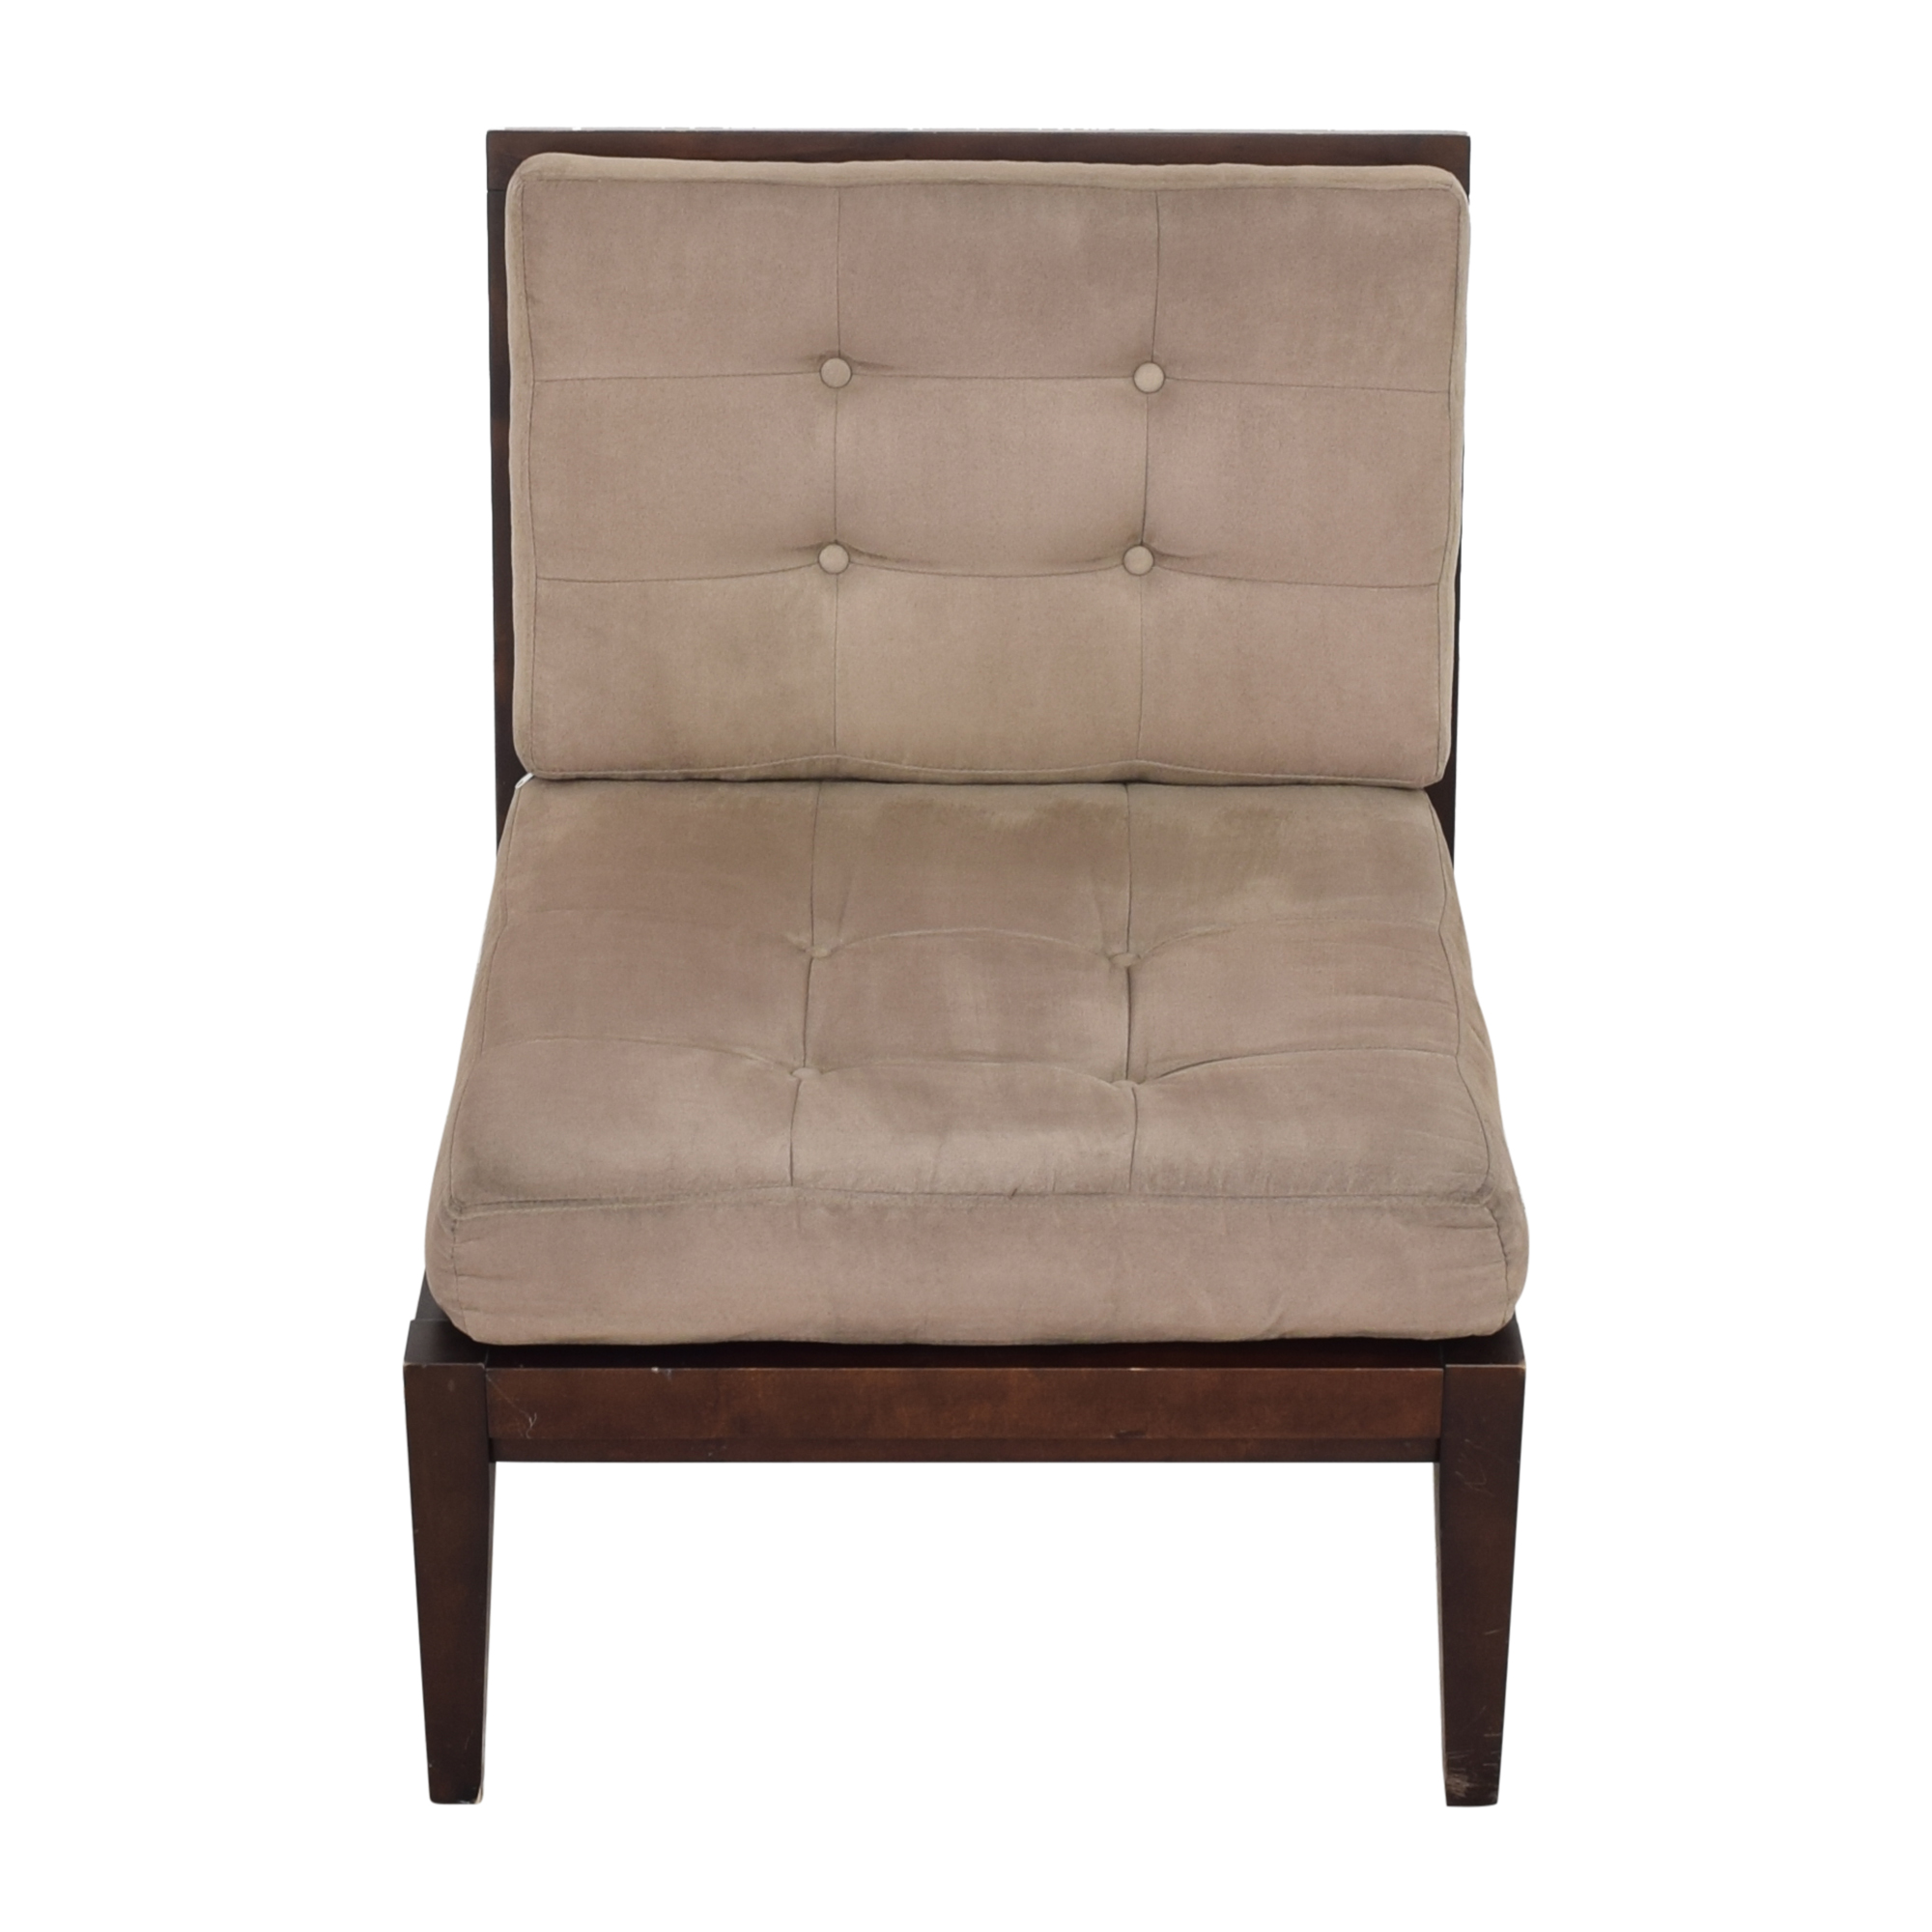 Crate & Barrel Armless Lounge Chair sale